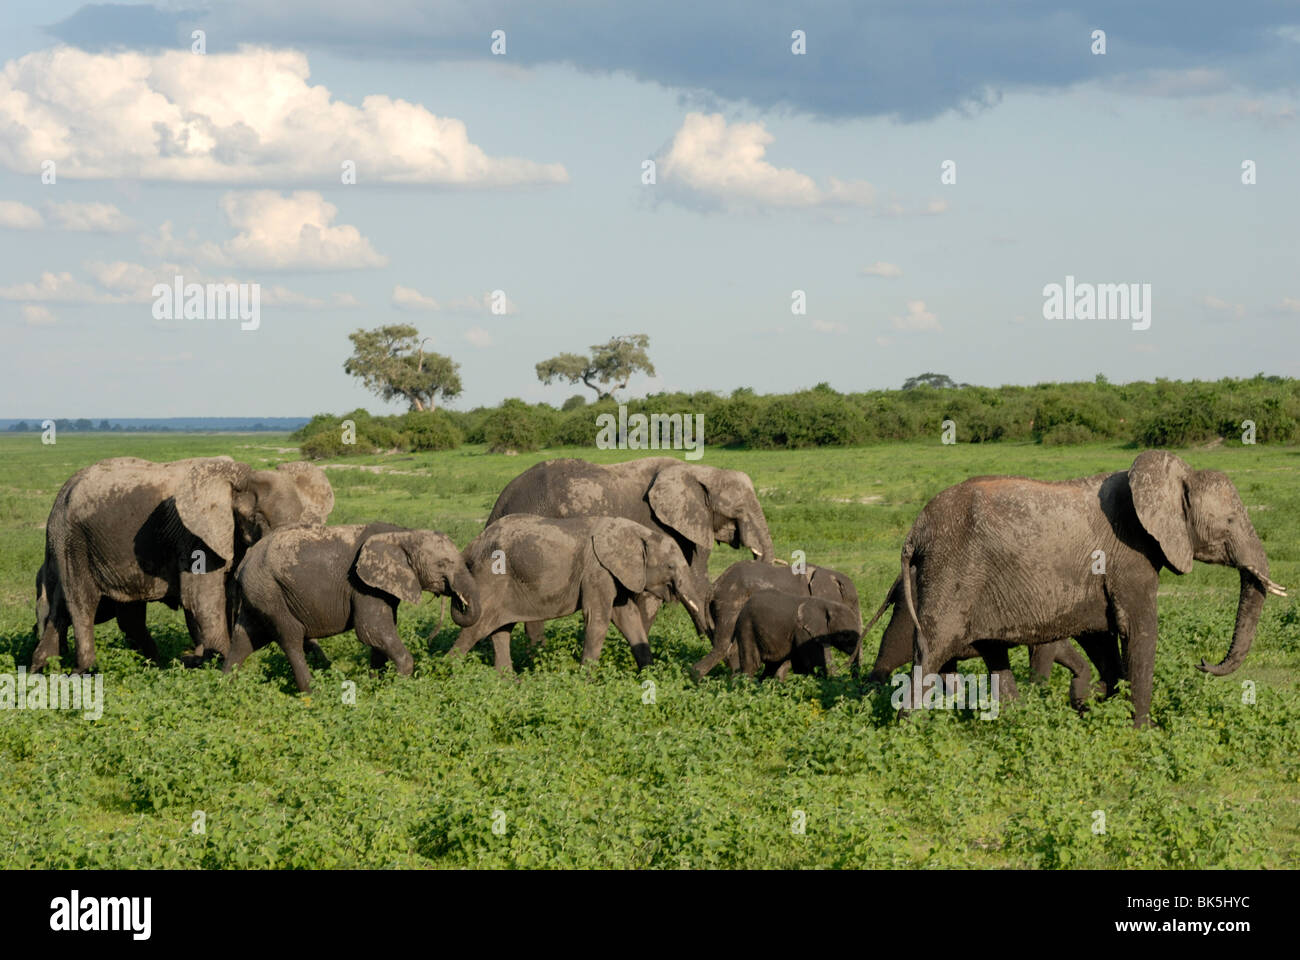 Group of elephants after mud bath, Chobe National Park, Botswana, Africa Stock Photo